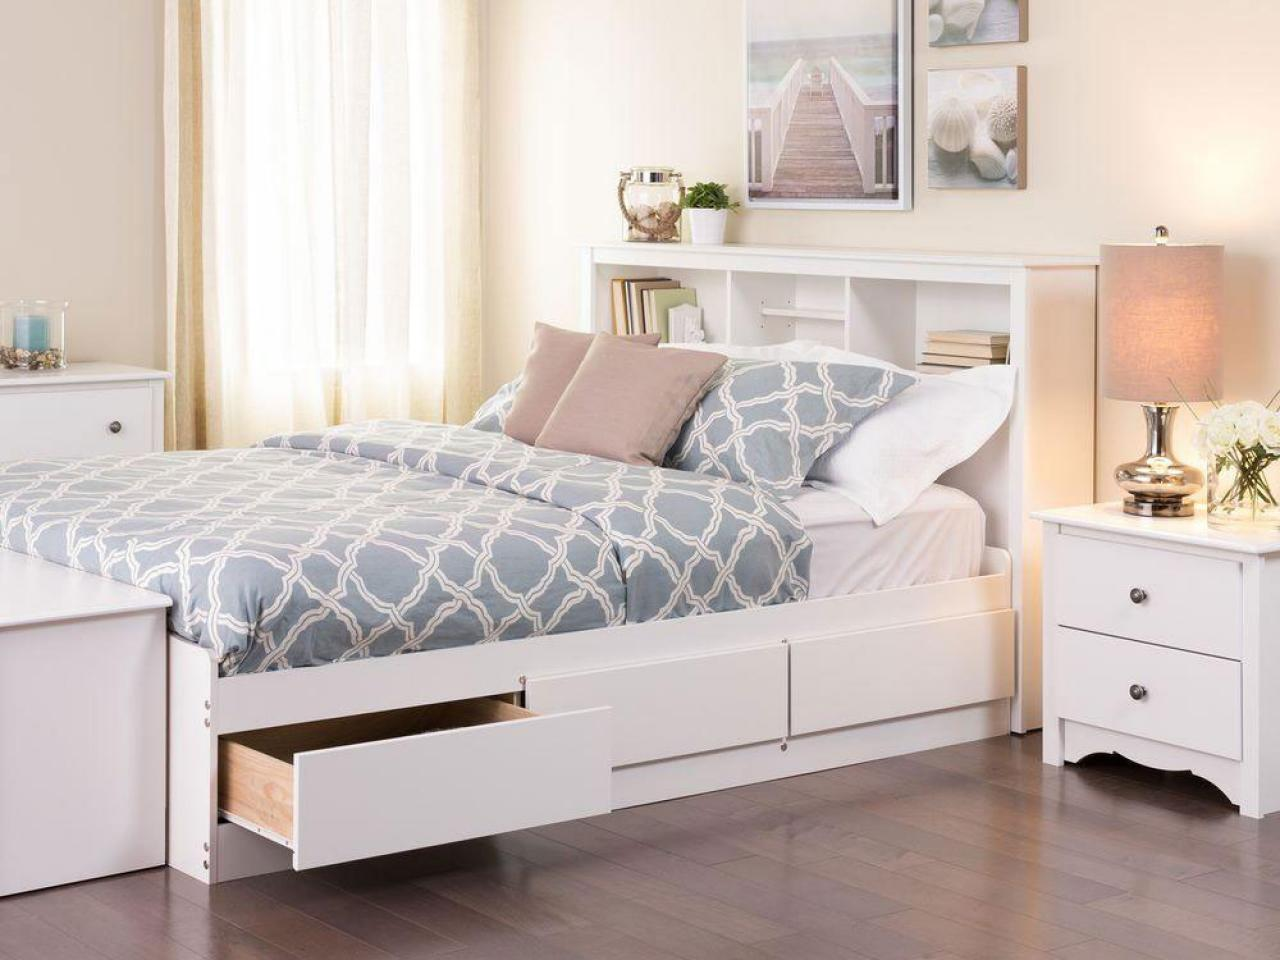 Best Storage Beds For Your Home Hgtv S Decorating